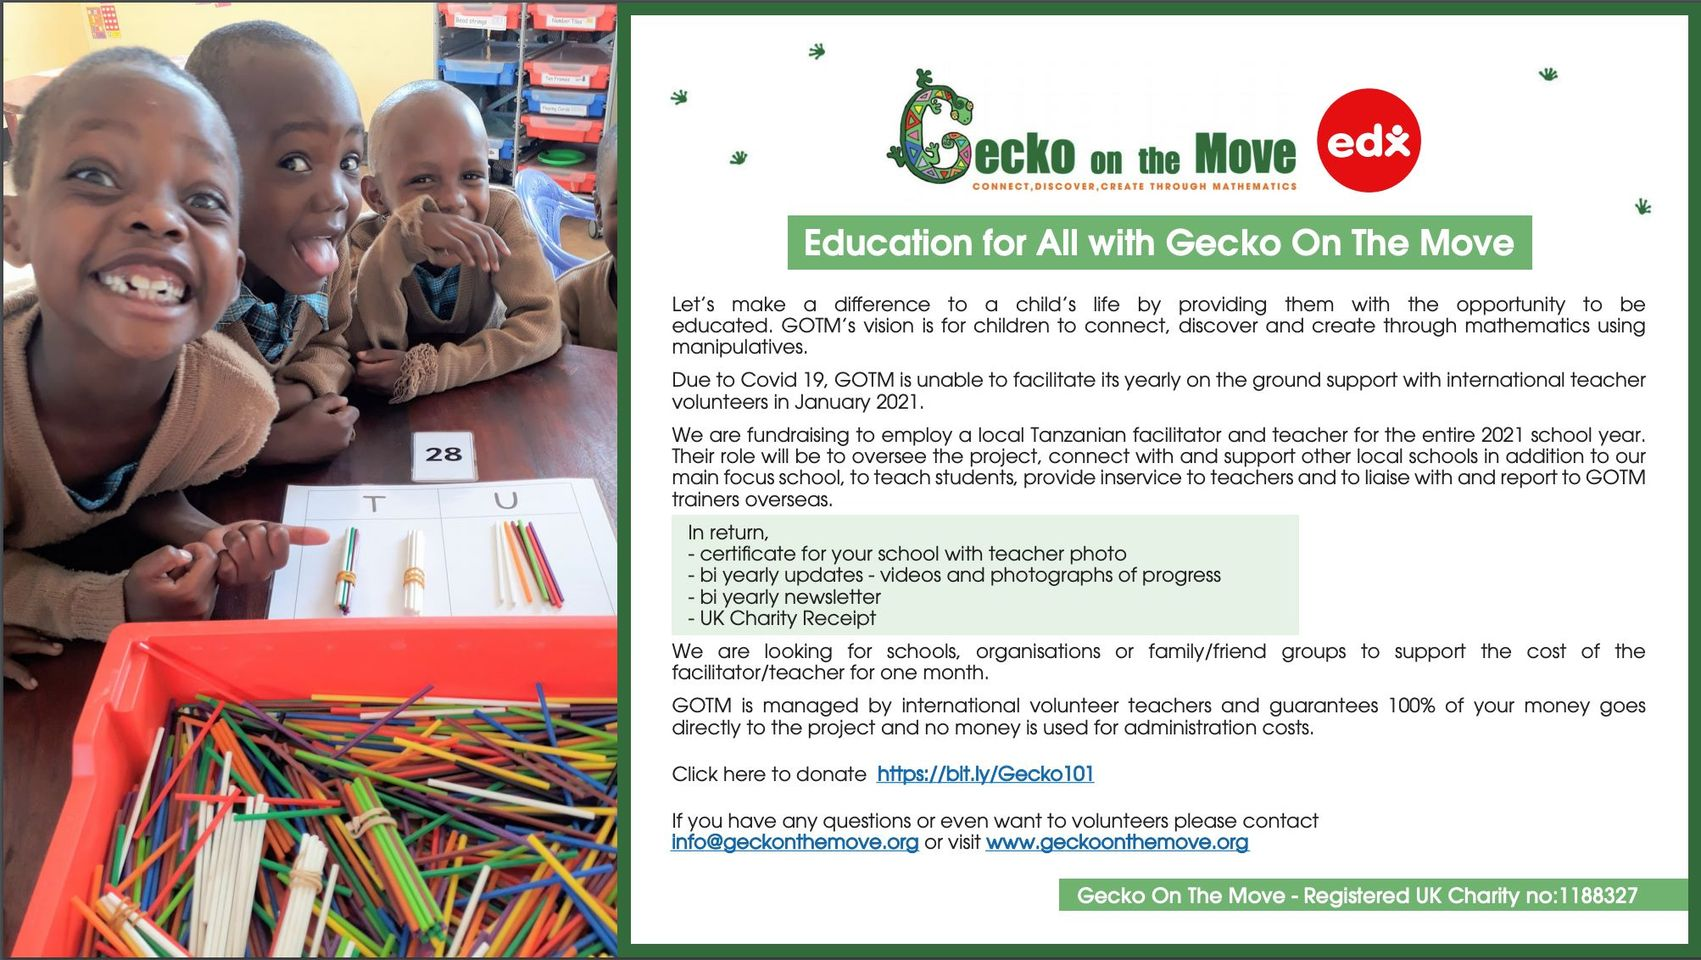 Edx Education Gecko On The Move 2020